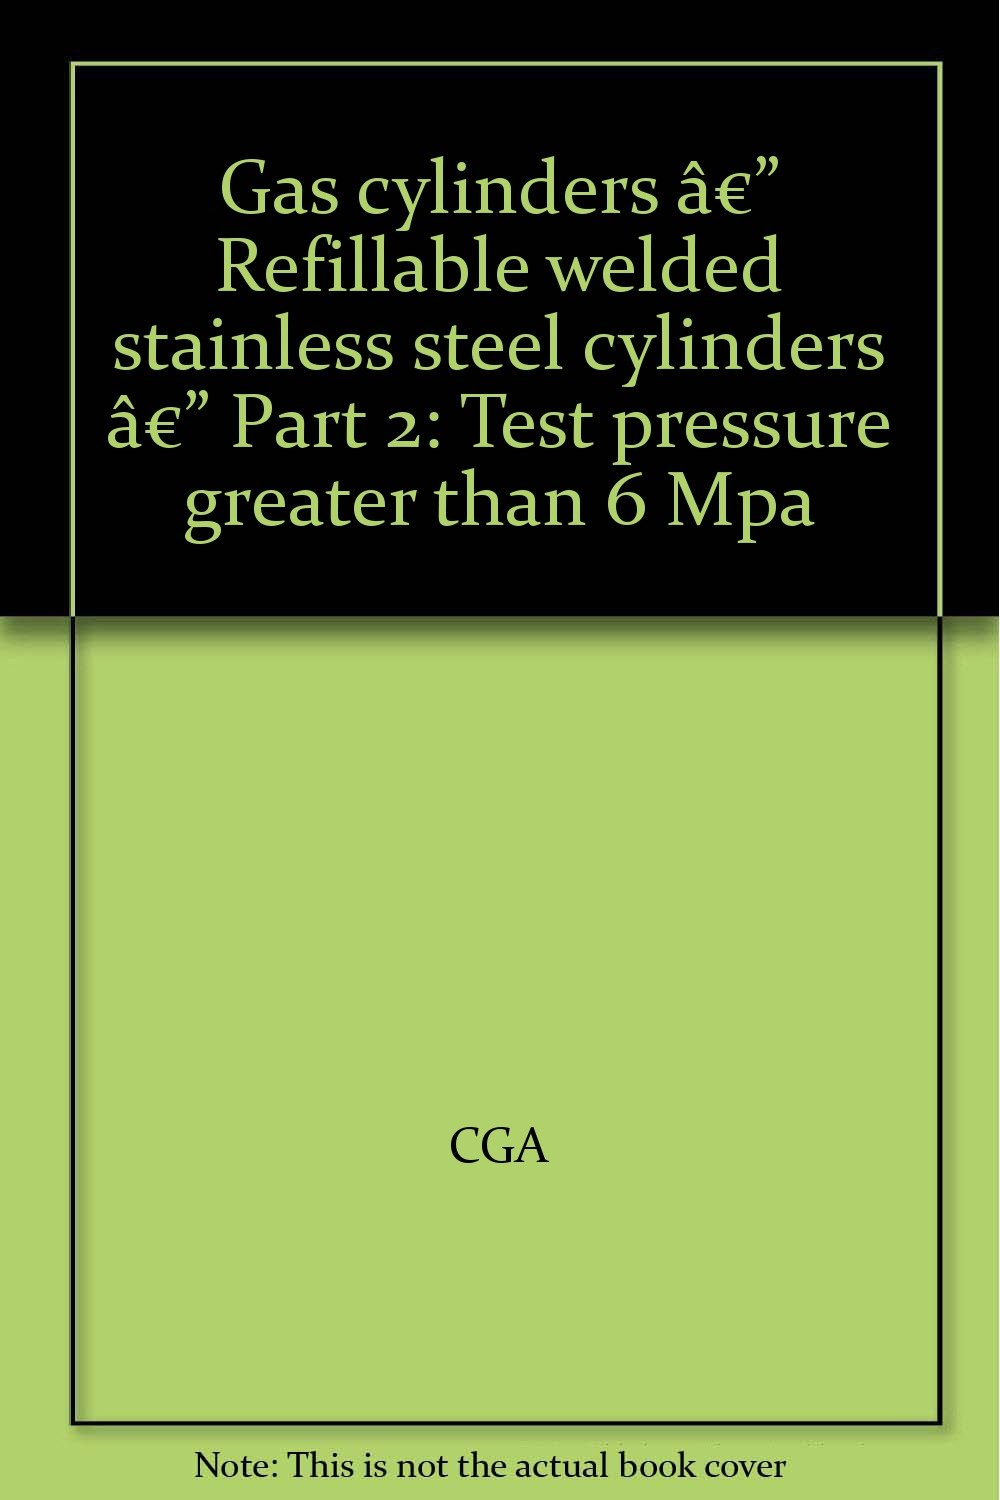 Download Gas cylinders — Refillable welded stainless steel cylinders — Part 2: Test pressure greater than 6 Mpa pdf